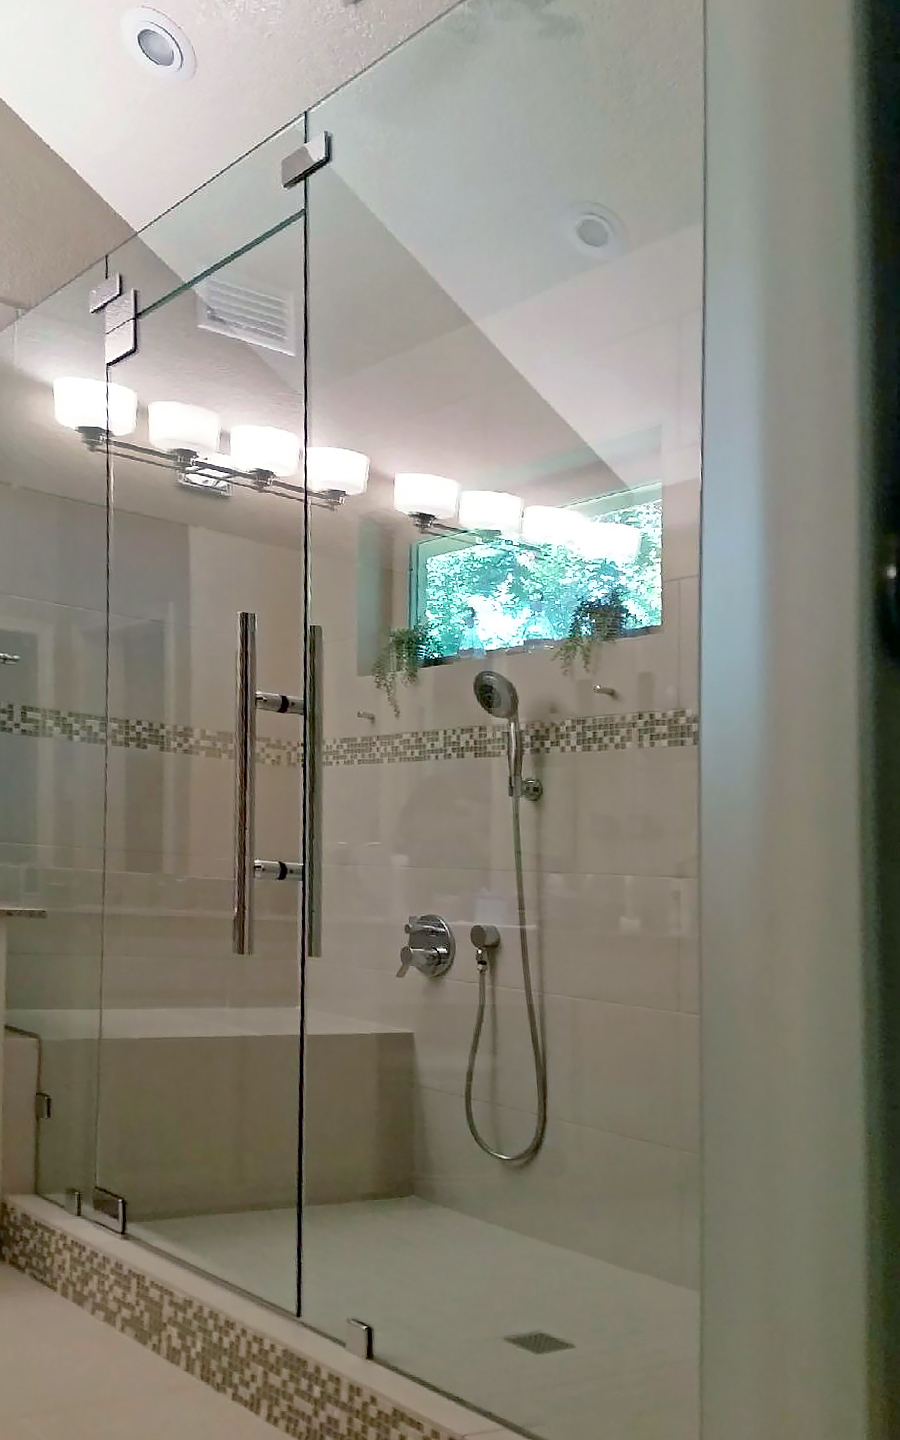 Inline Shower Enclosure with Ladder Pull Handle